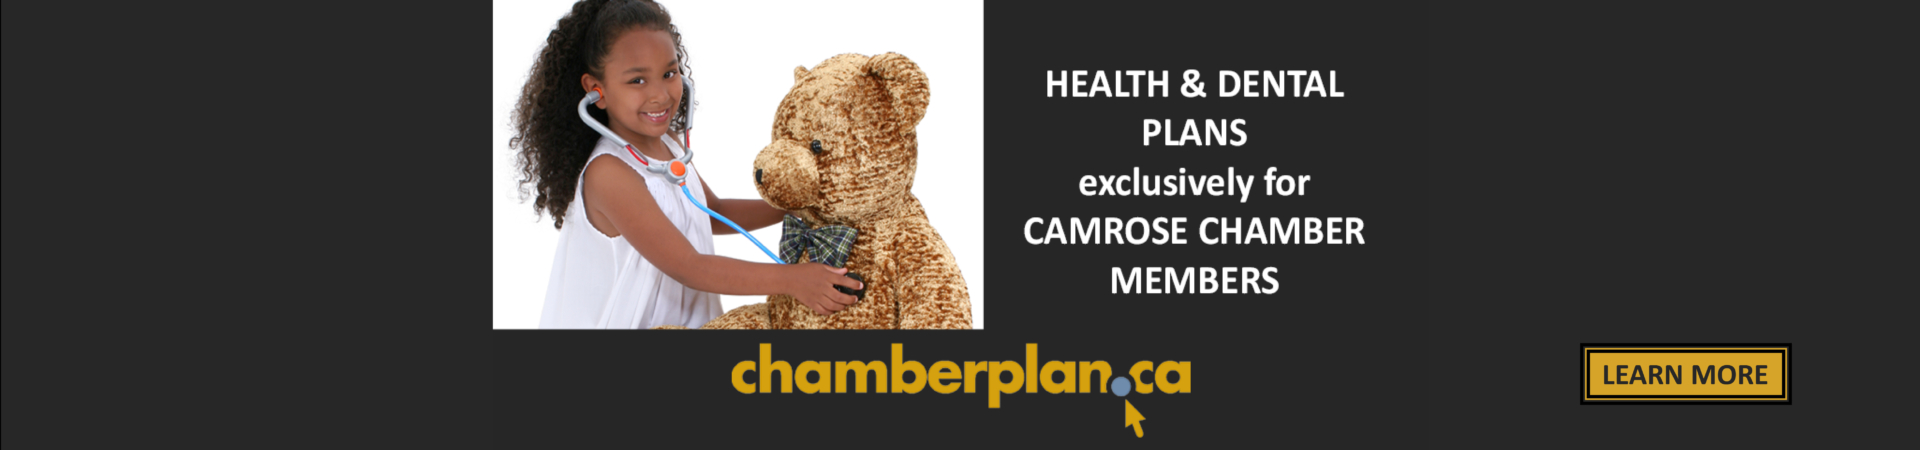 health and dental plans exclusively for camrose chamber members